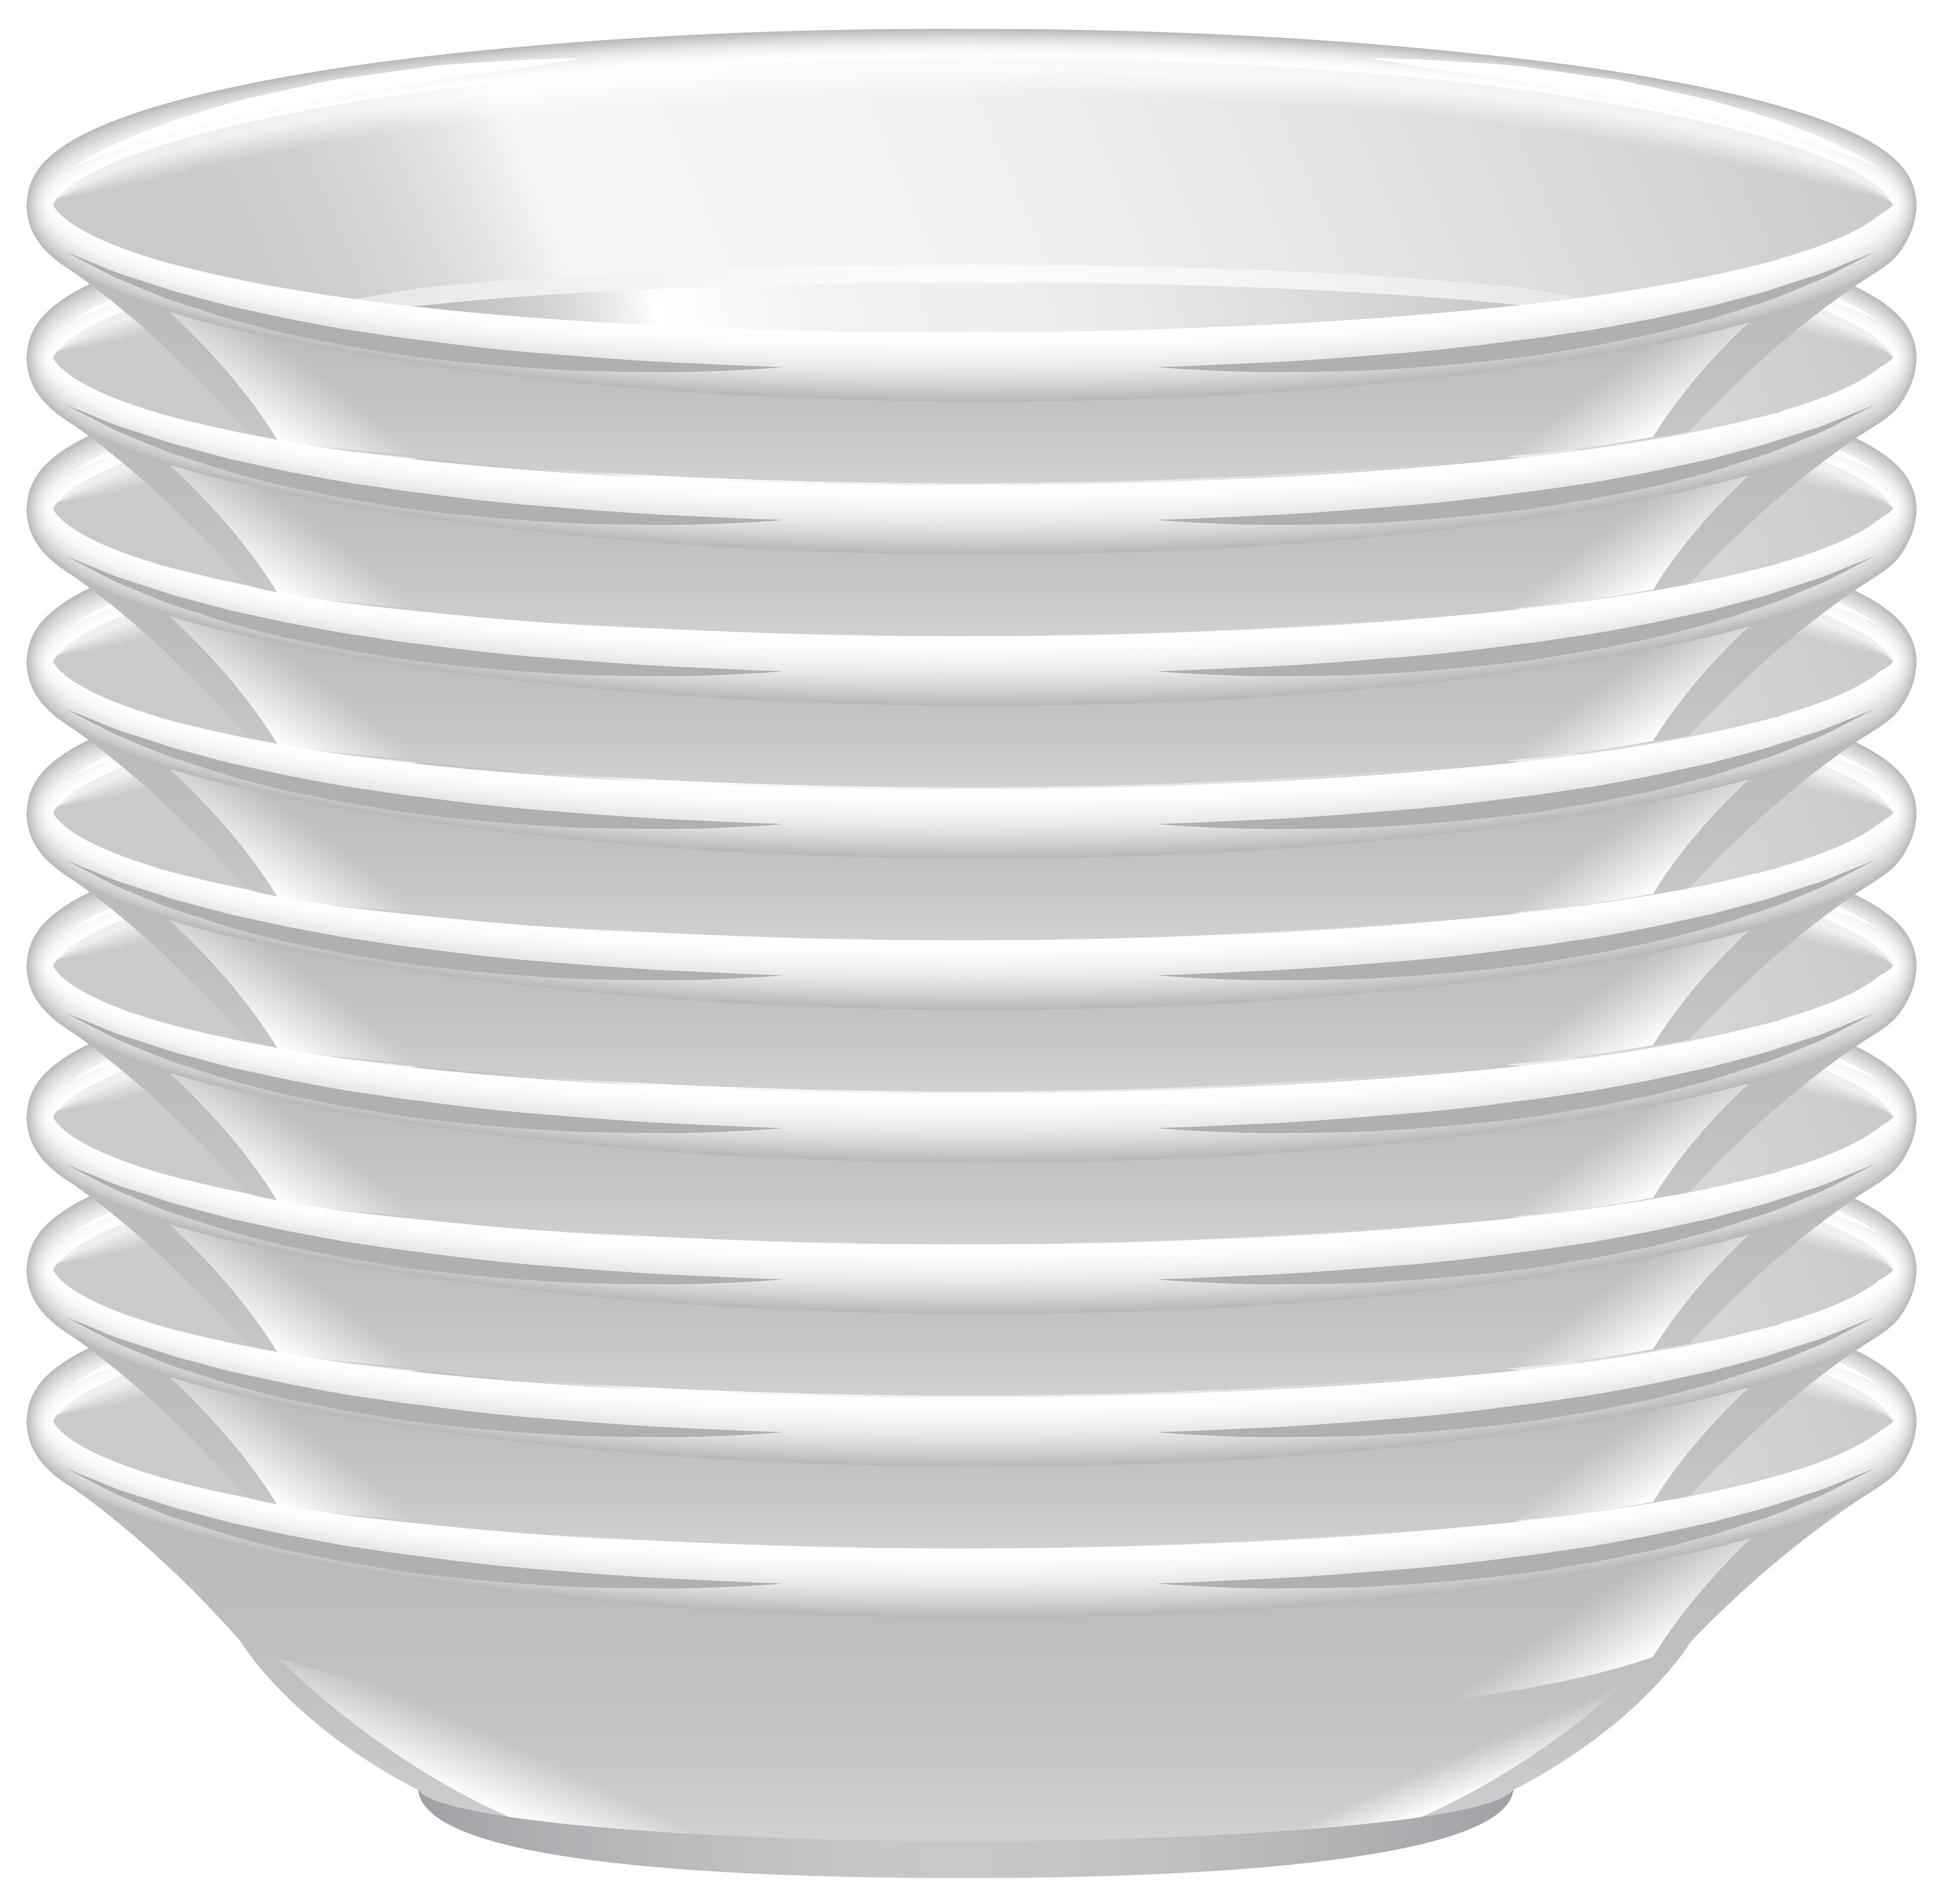 Soup plates clip art. Plate clipart png jpg freeuse download